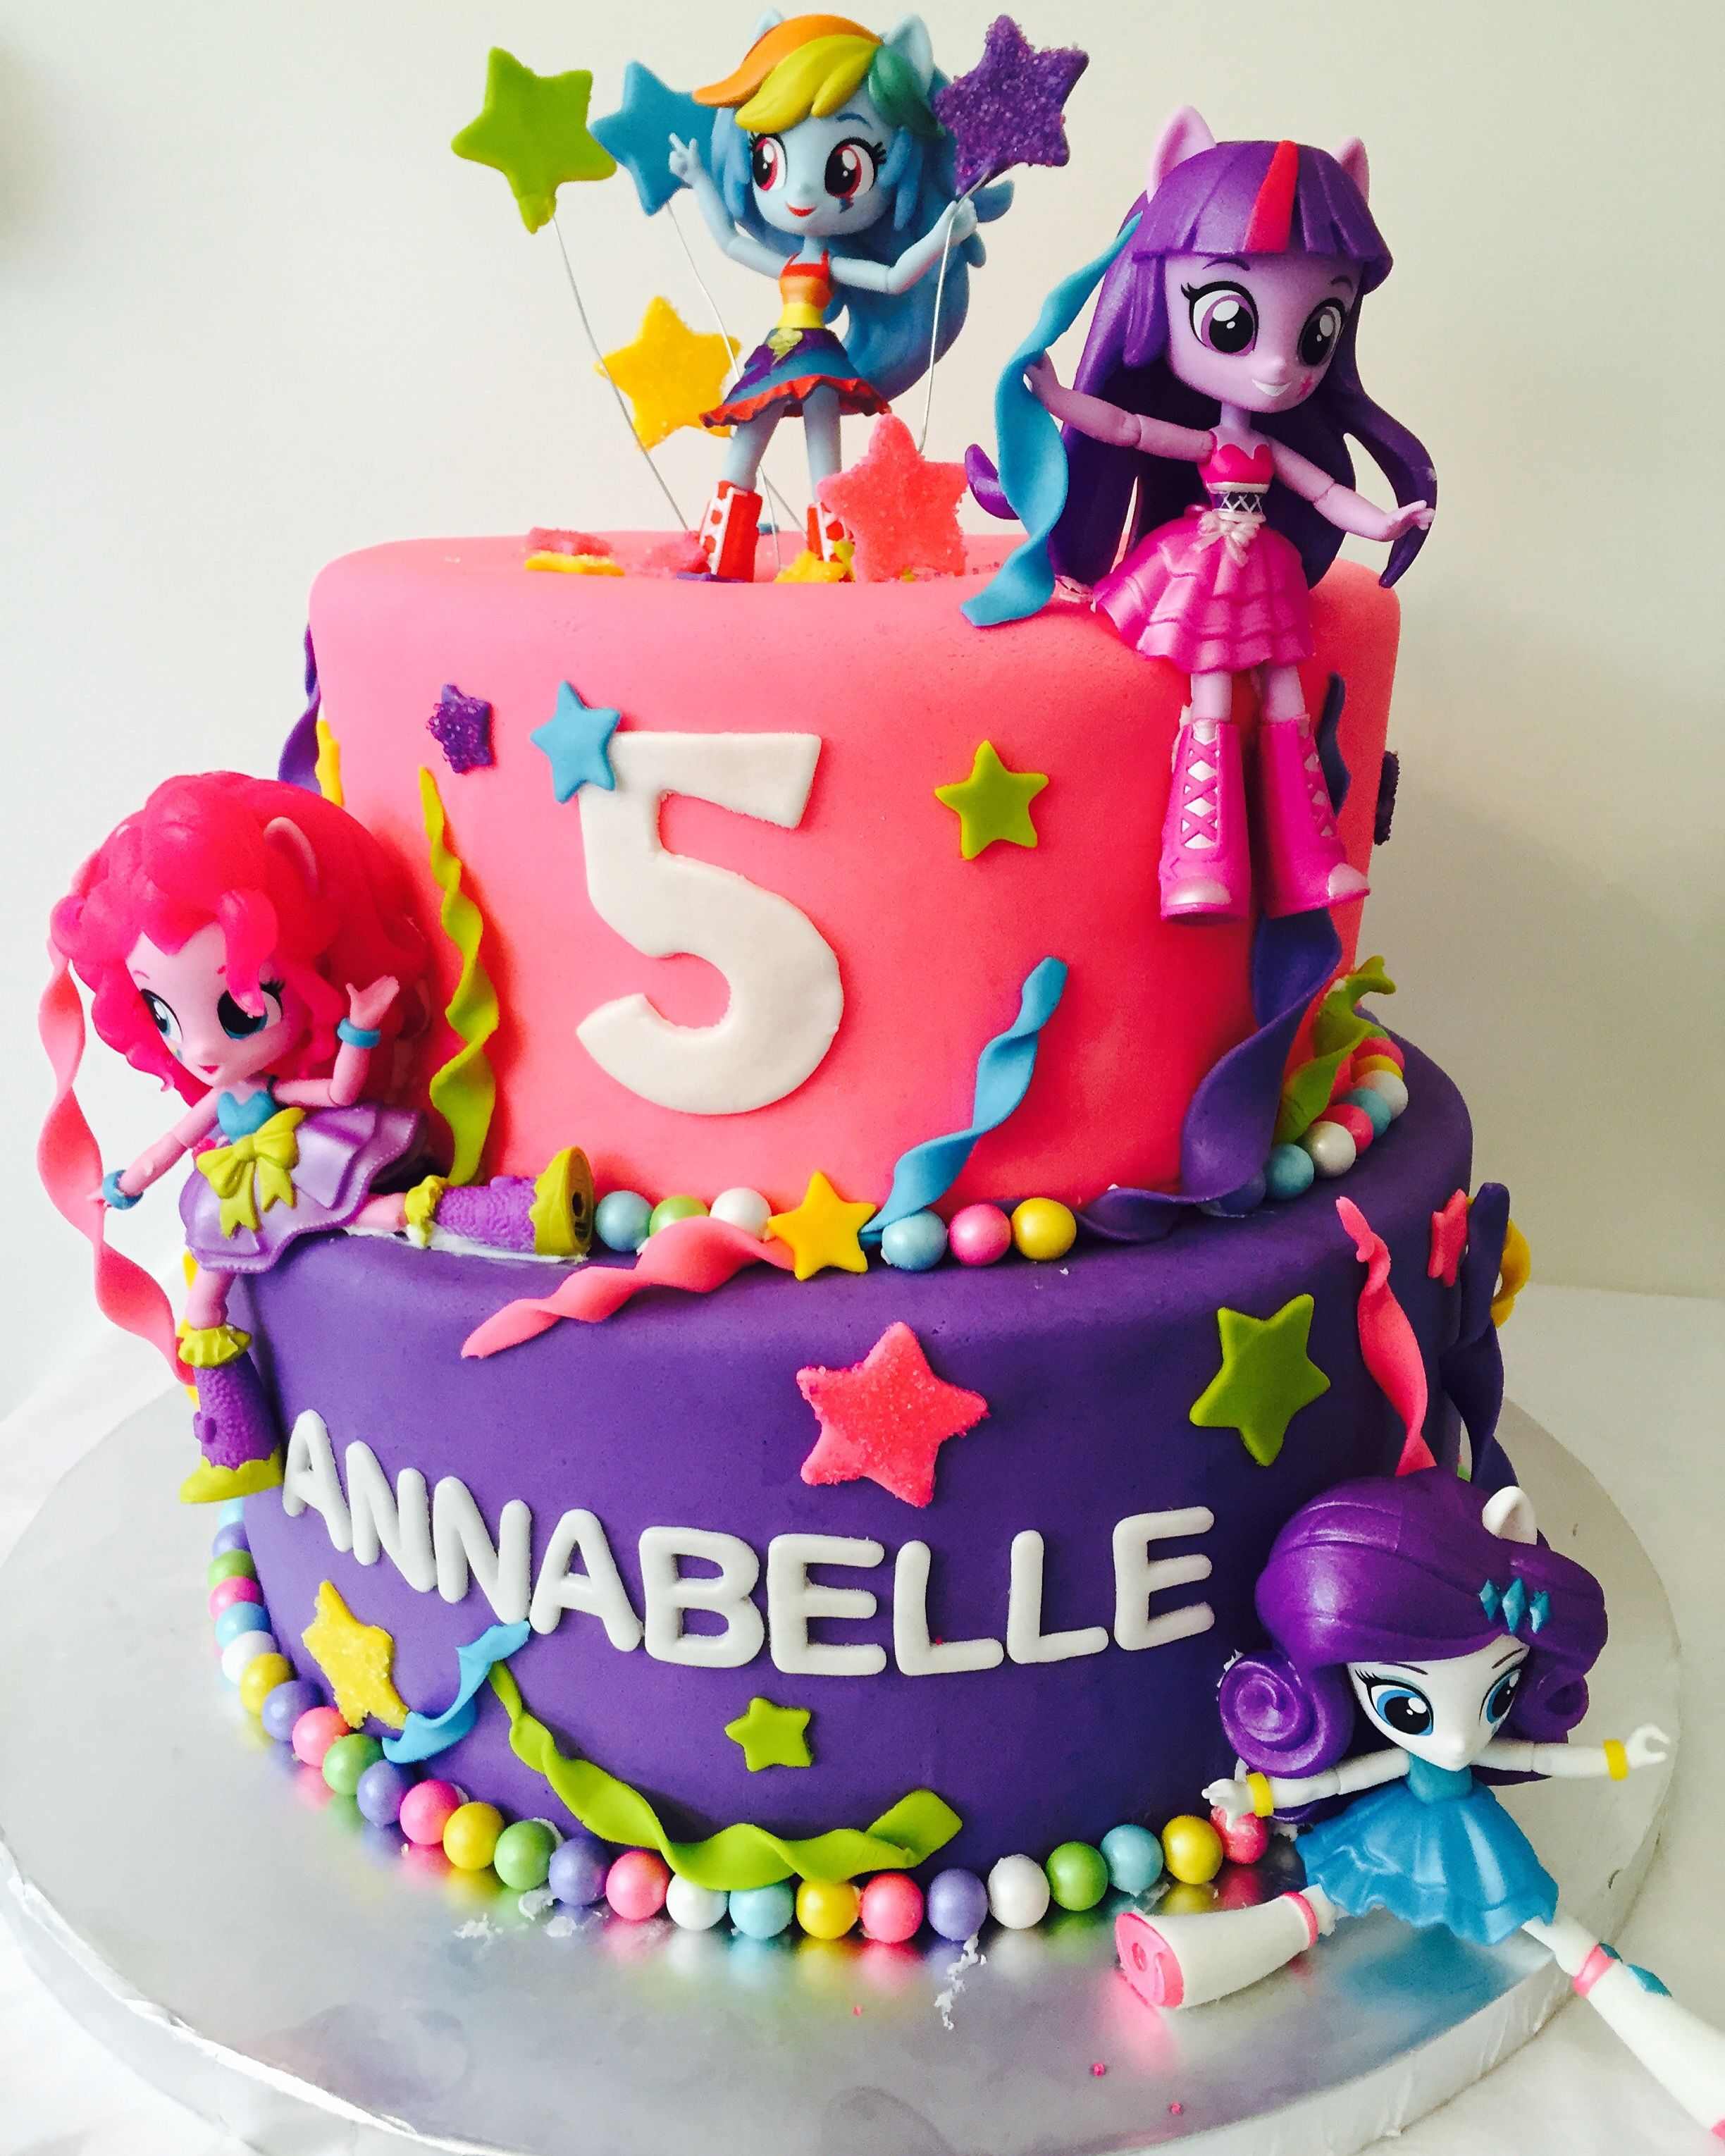 My Little Pony Equestrian  Cake by Lisa @ The Cake Stand in Ventura Ca